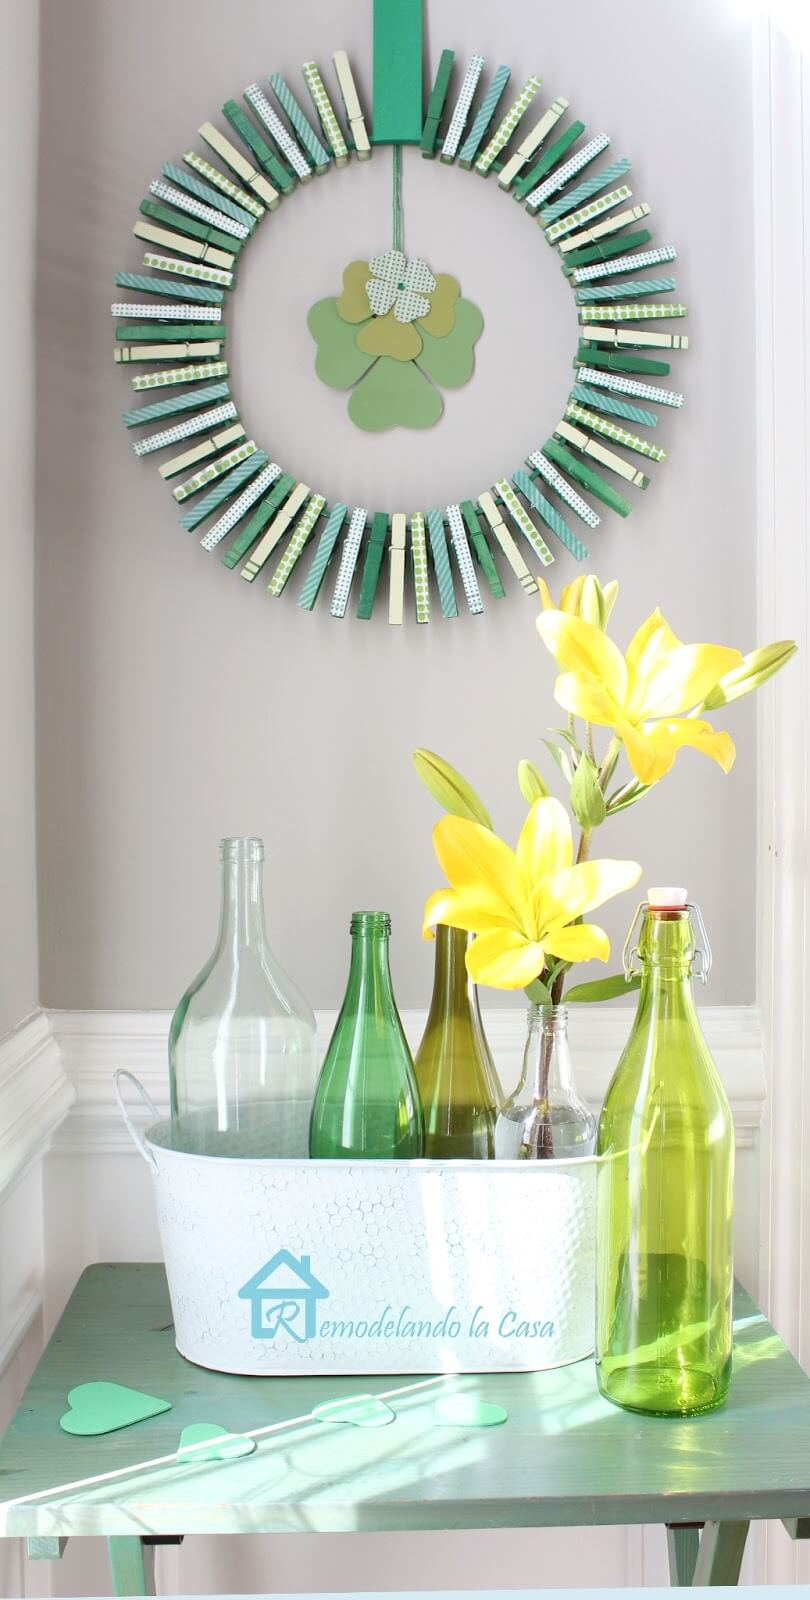 Comfy Ideas 2018 St Patrick S Day Decorations Classroom St Patrick Day Decorations Pinterest Diy Day Clospin Wreath Diy Day Decorations curbed St Patricks Day Decorations